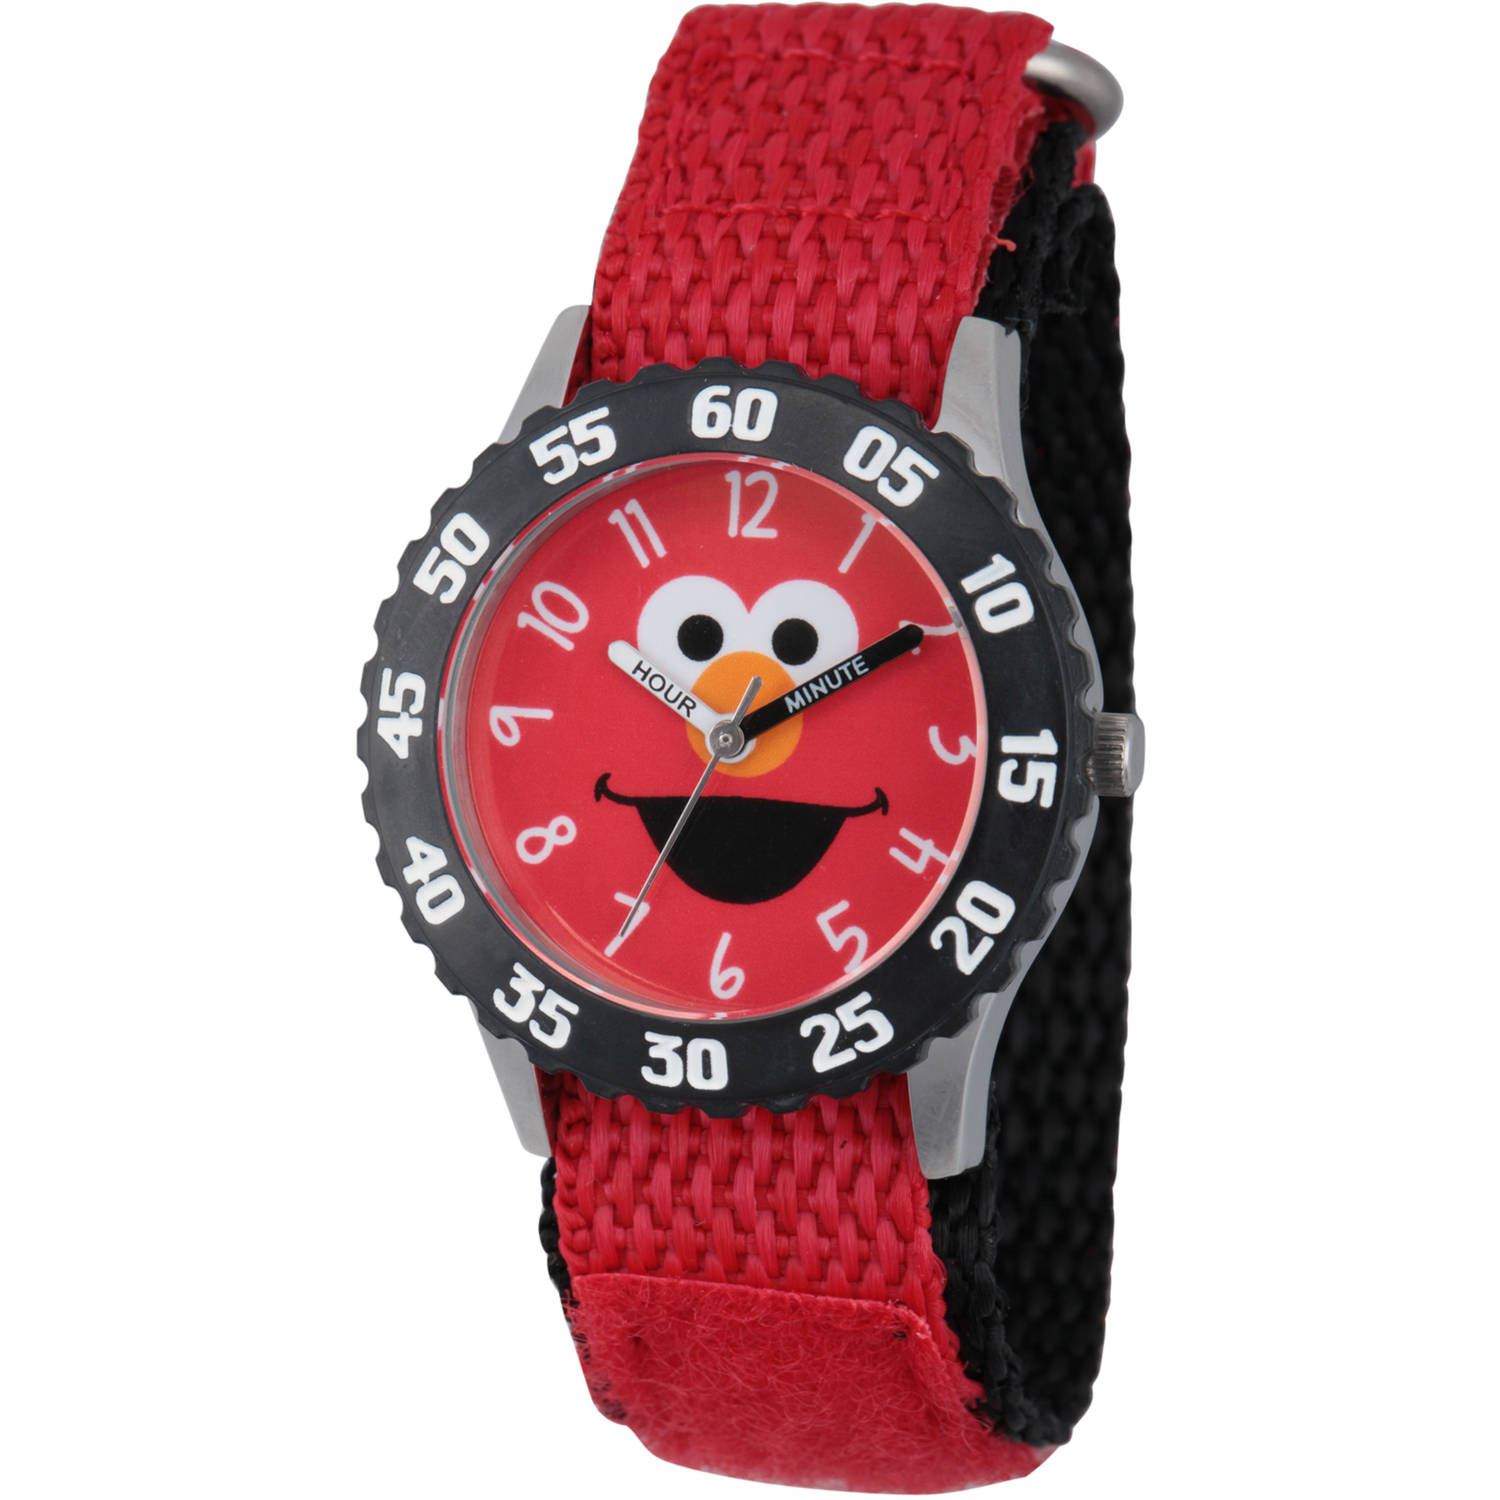 Sesame Street Stainless Steel Time Teacher Watch, Black Bezel, Red Hook and Loop Nylon Strap with Black Backing